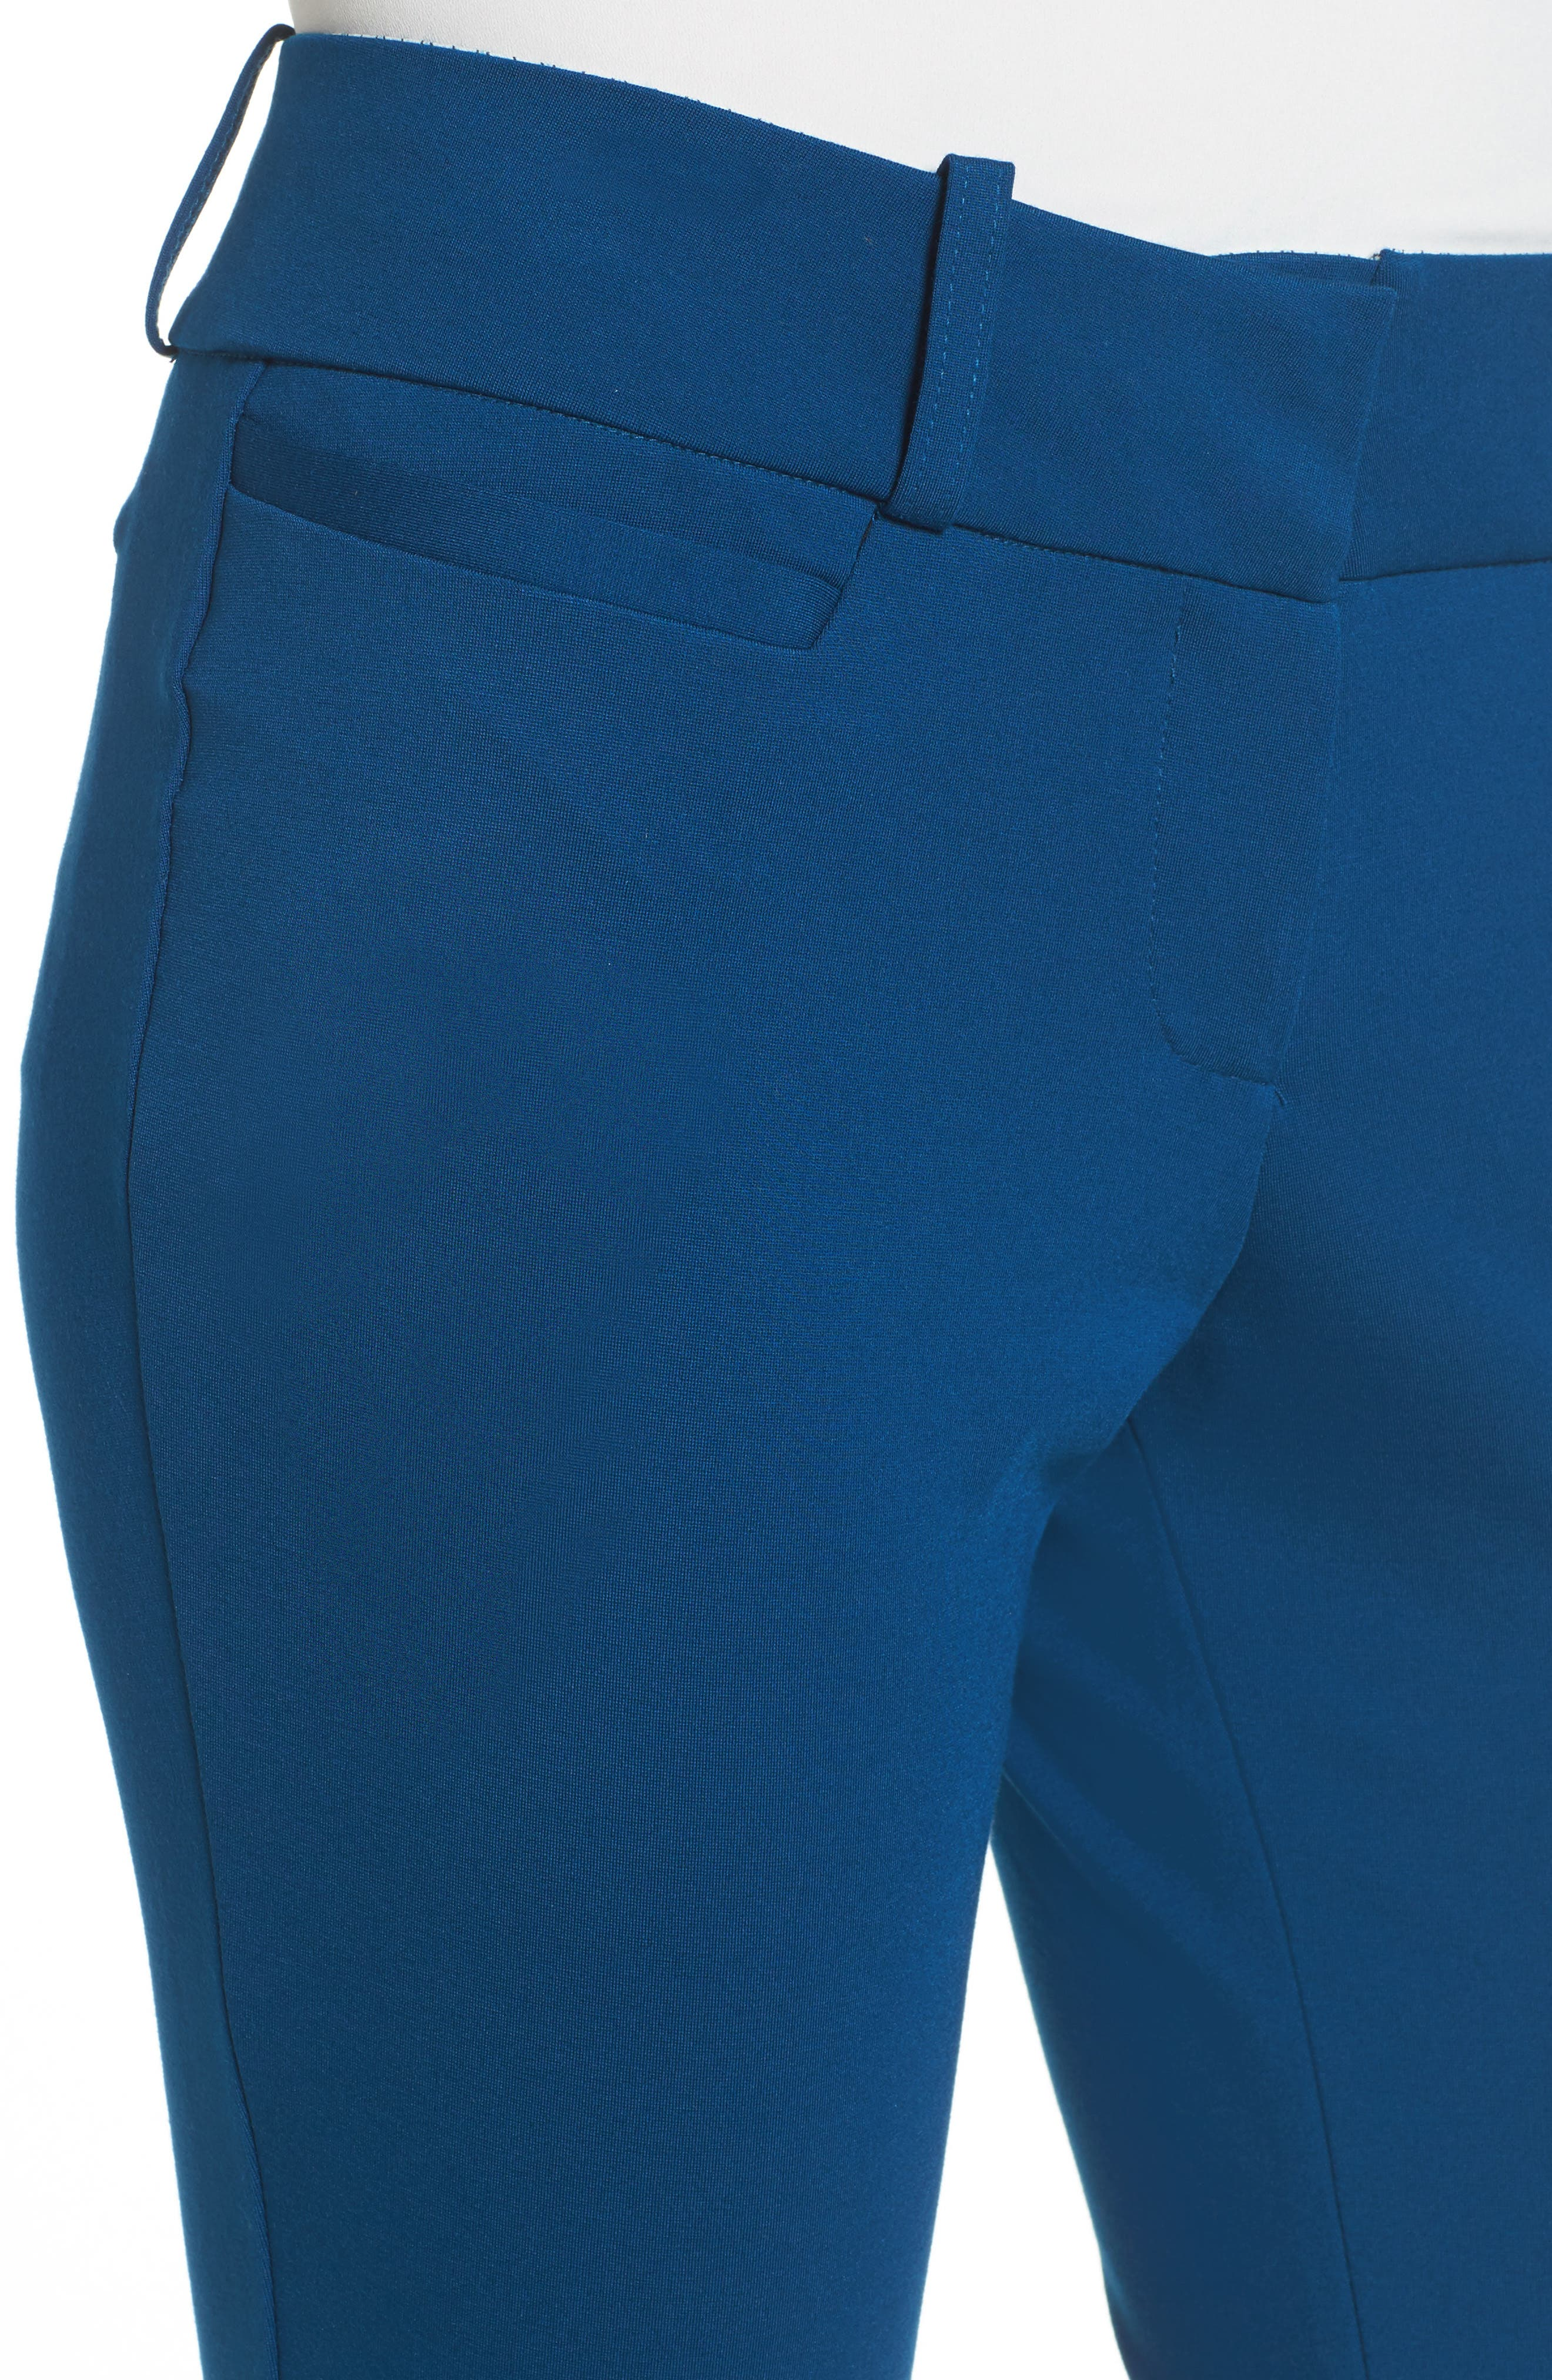 Jane Brown Trousers,                             Alternate thumbnail 4, color,                             NEW NAVY